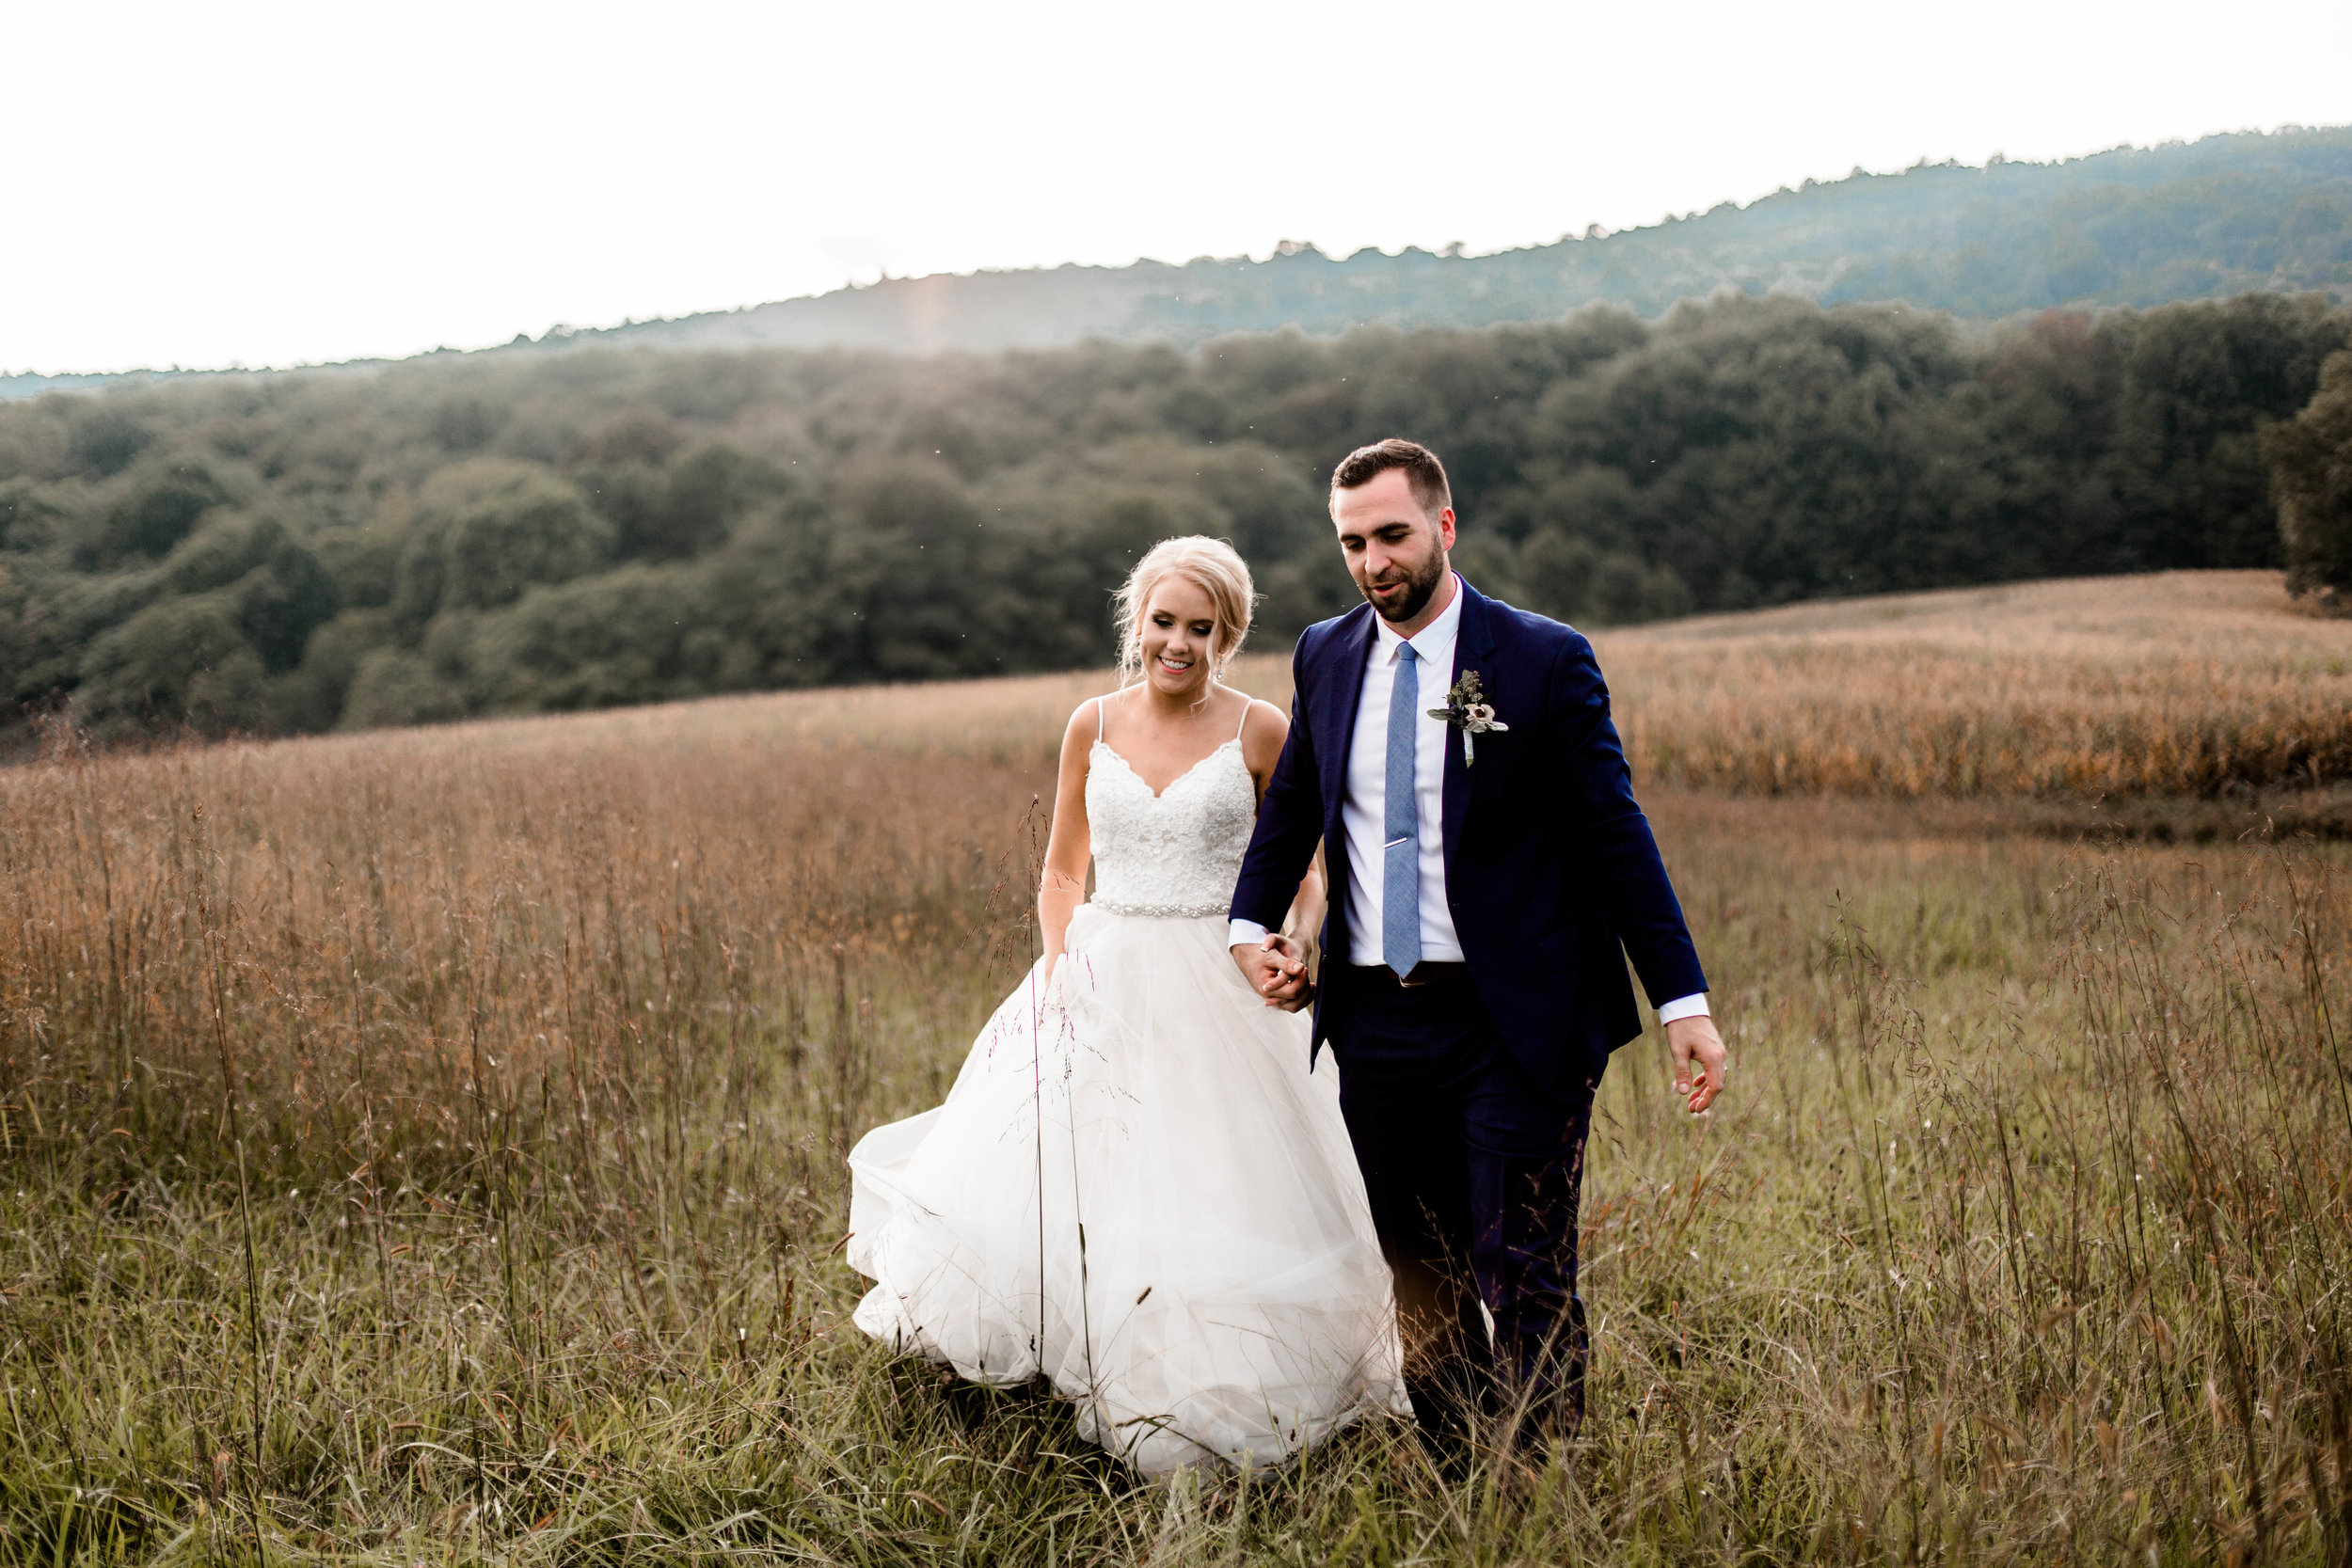 nicole-daacke-photography-intimate-wedding-in-a-lavender-field-washington-state-wedding-photographer-intimate-elopement-golden-lavender-field-wedding-photos-59.jpg